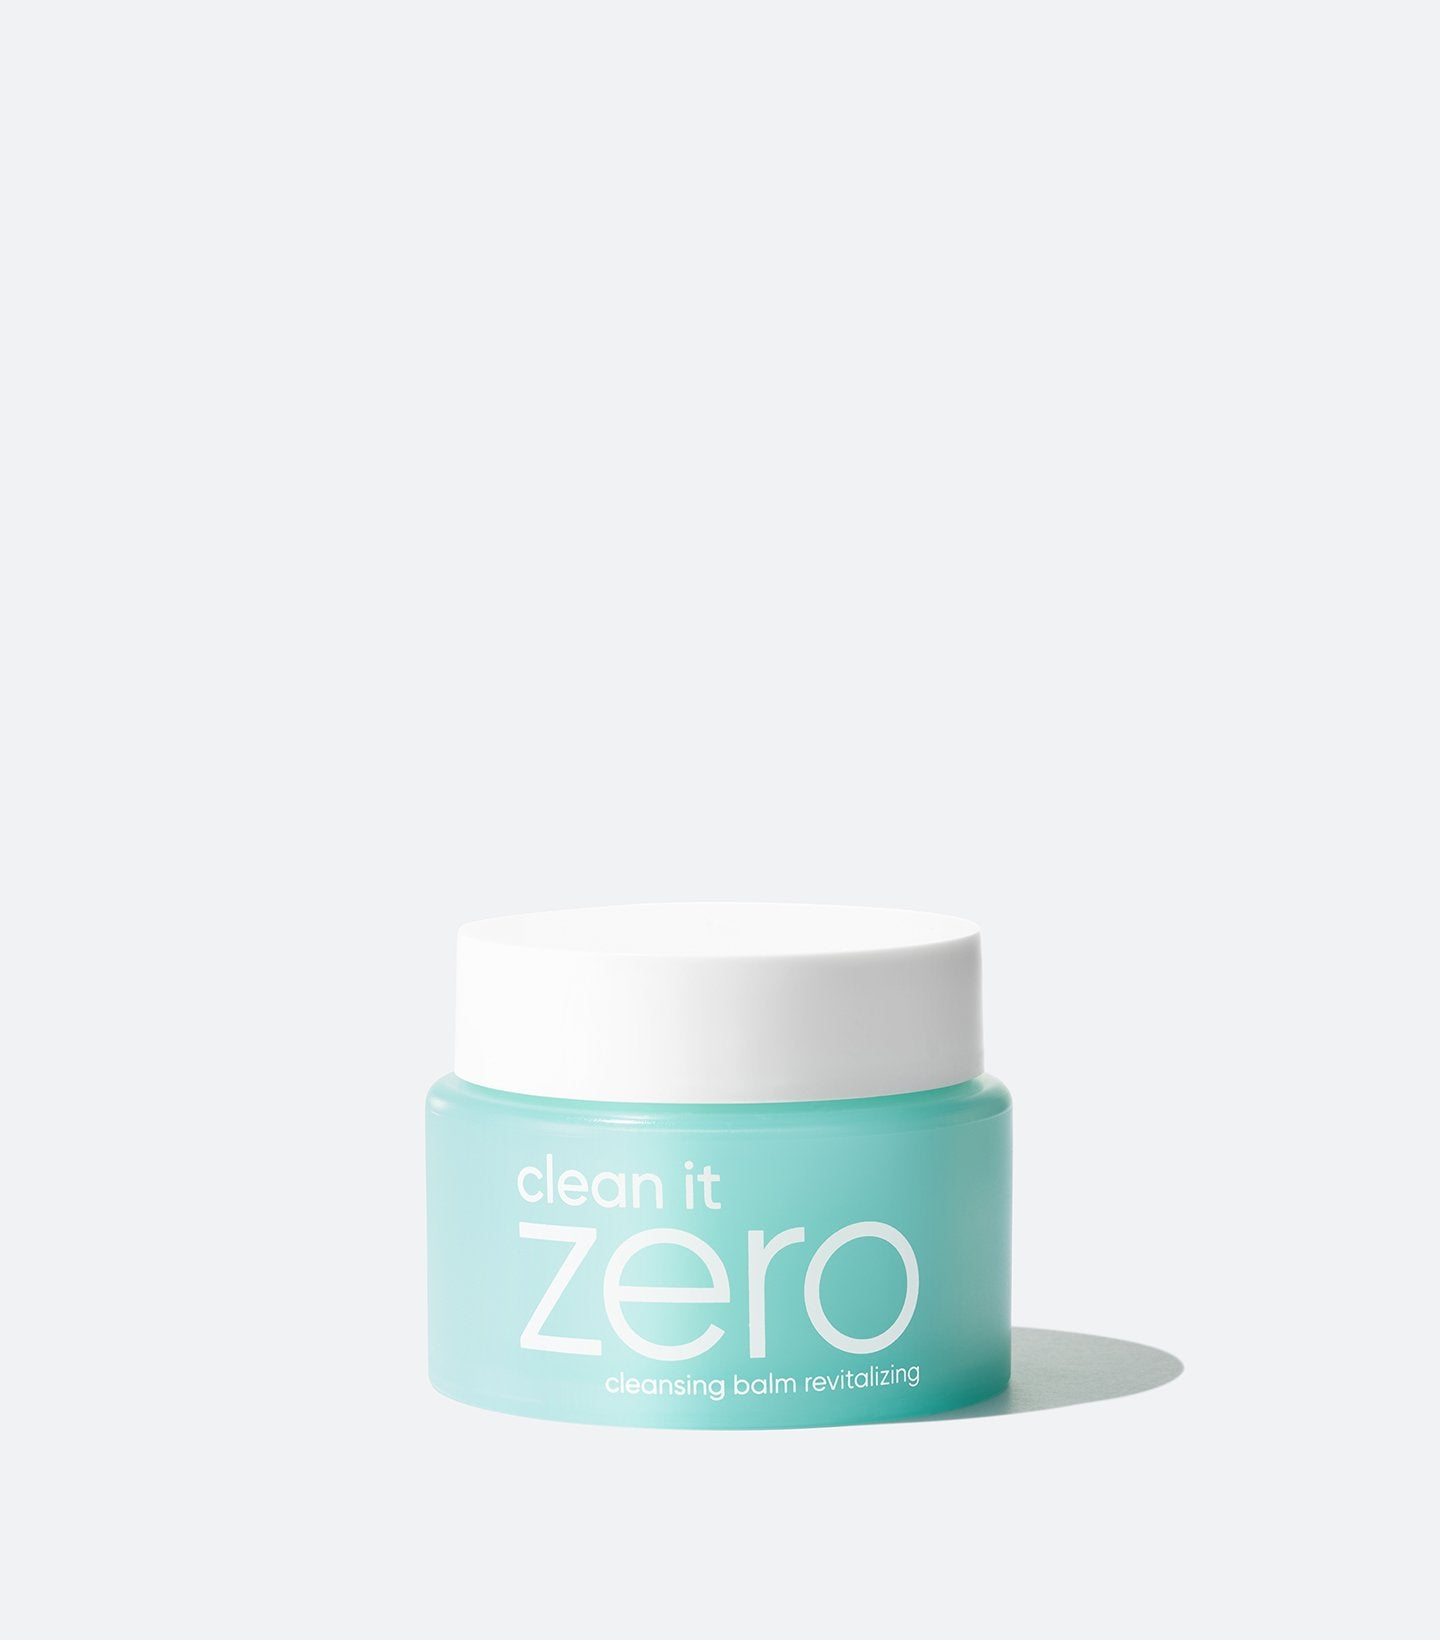 Clean It Zero Cleansing Balm, Revitalizing